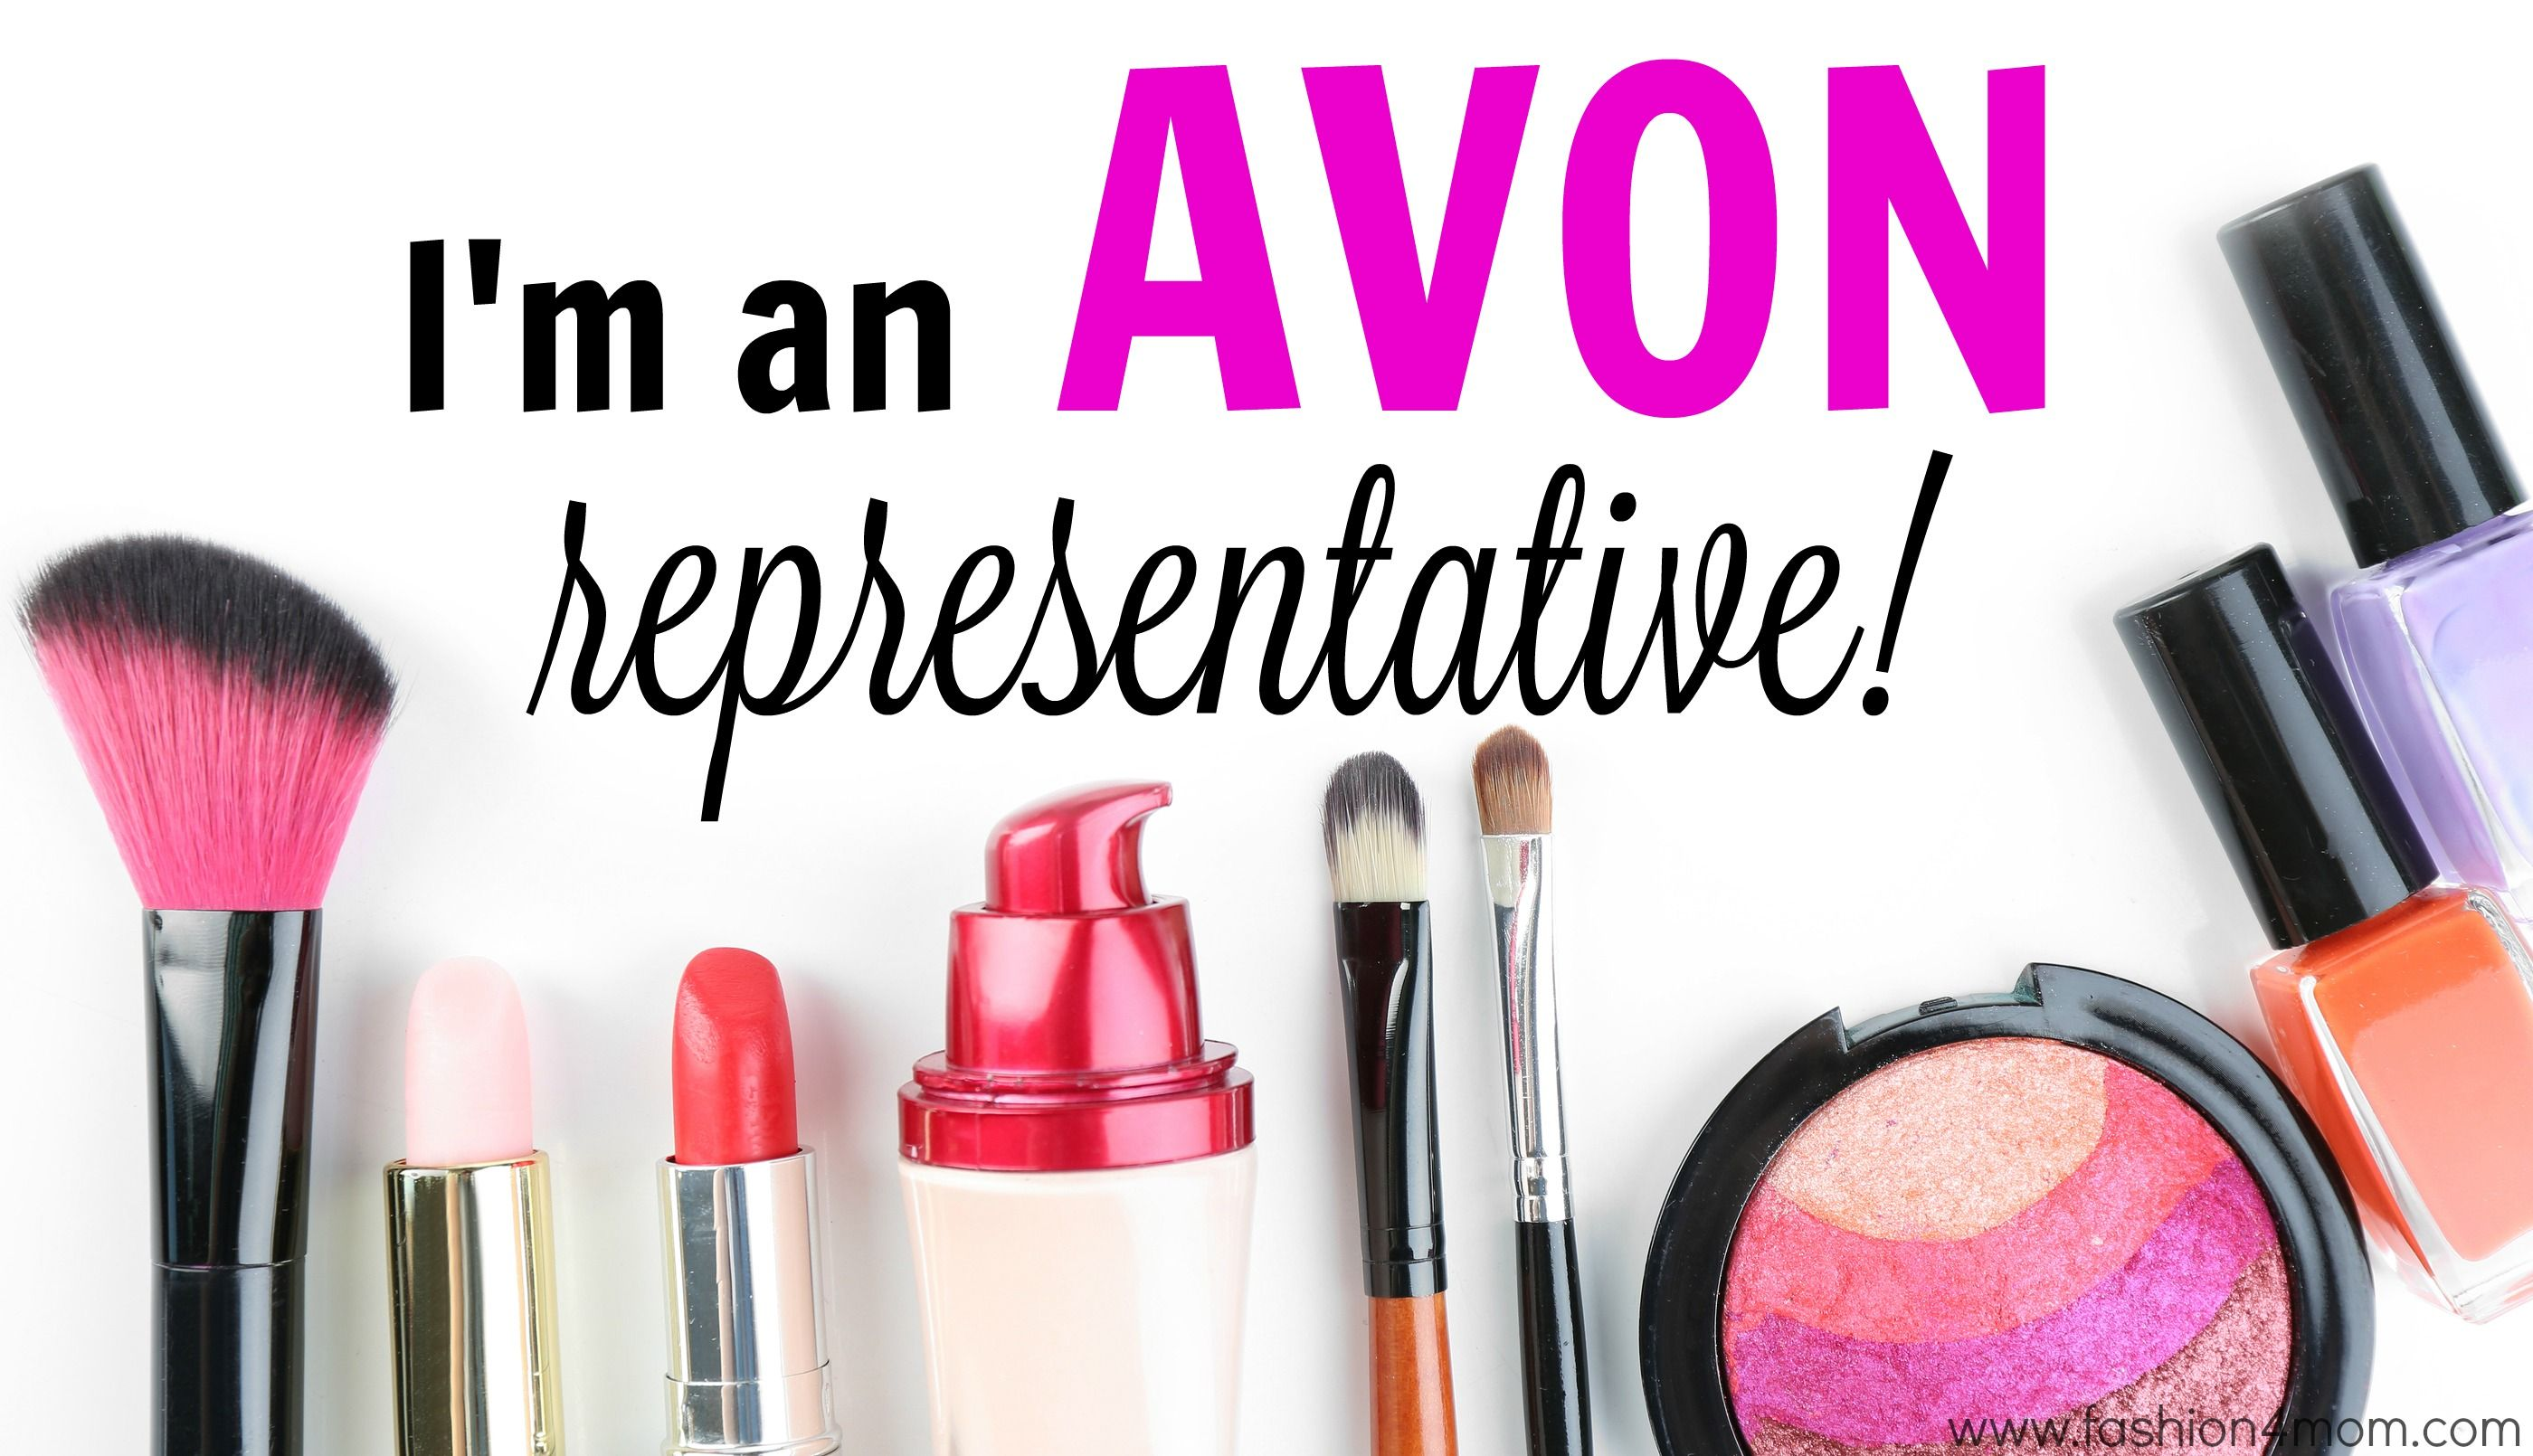 I'm an Avon representative! You can be too! Click on the